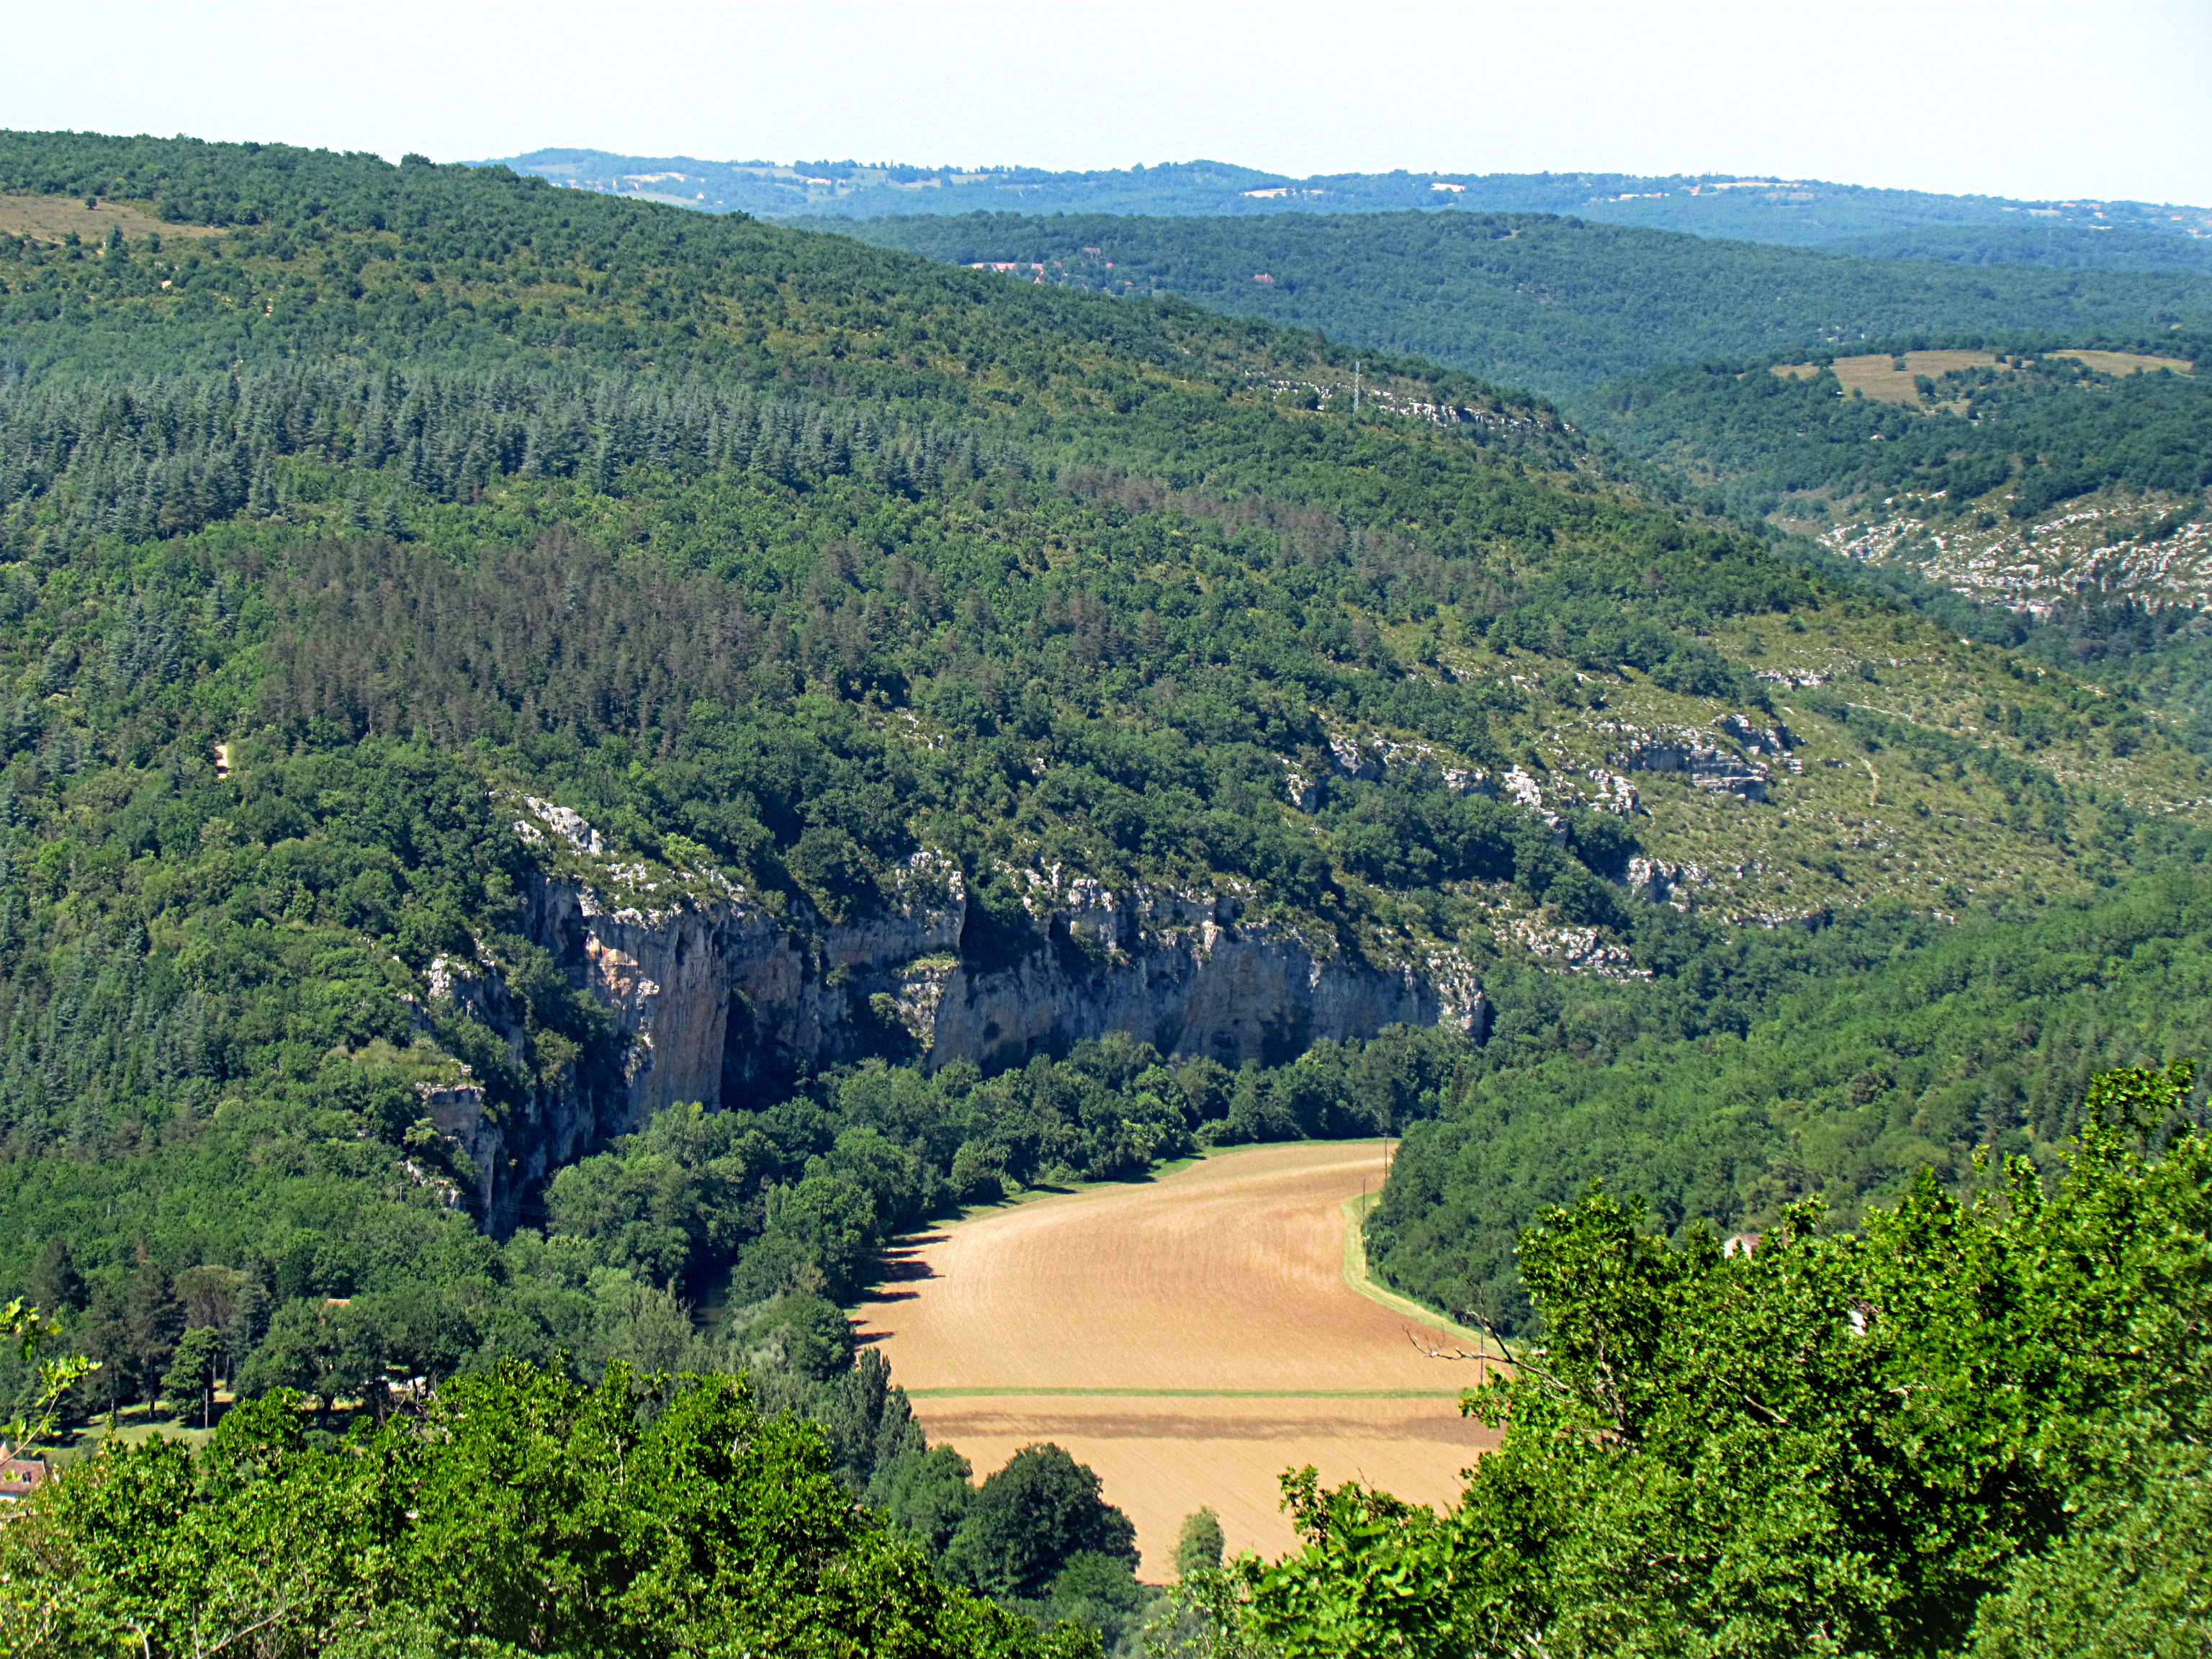 parc naturel regional des causses du quercy